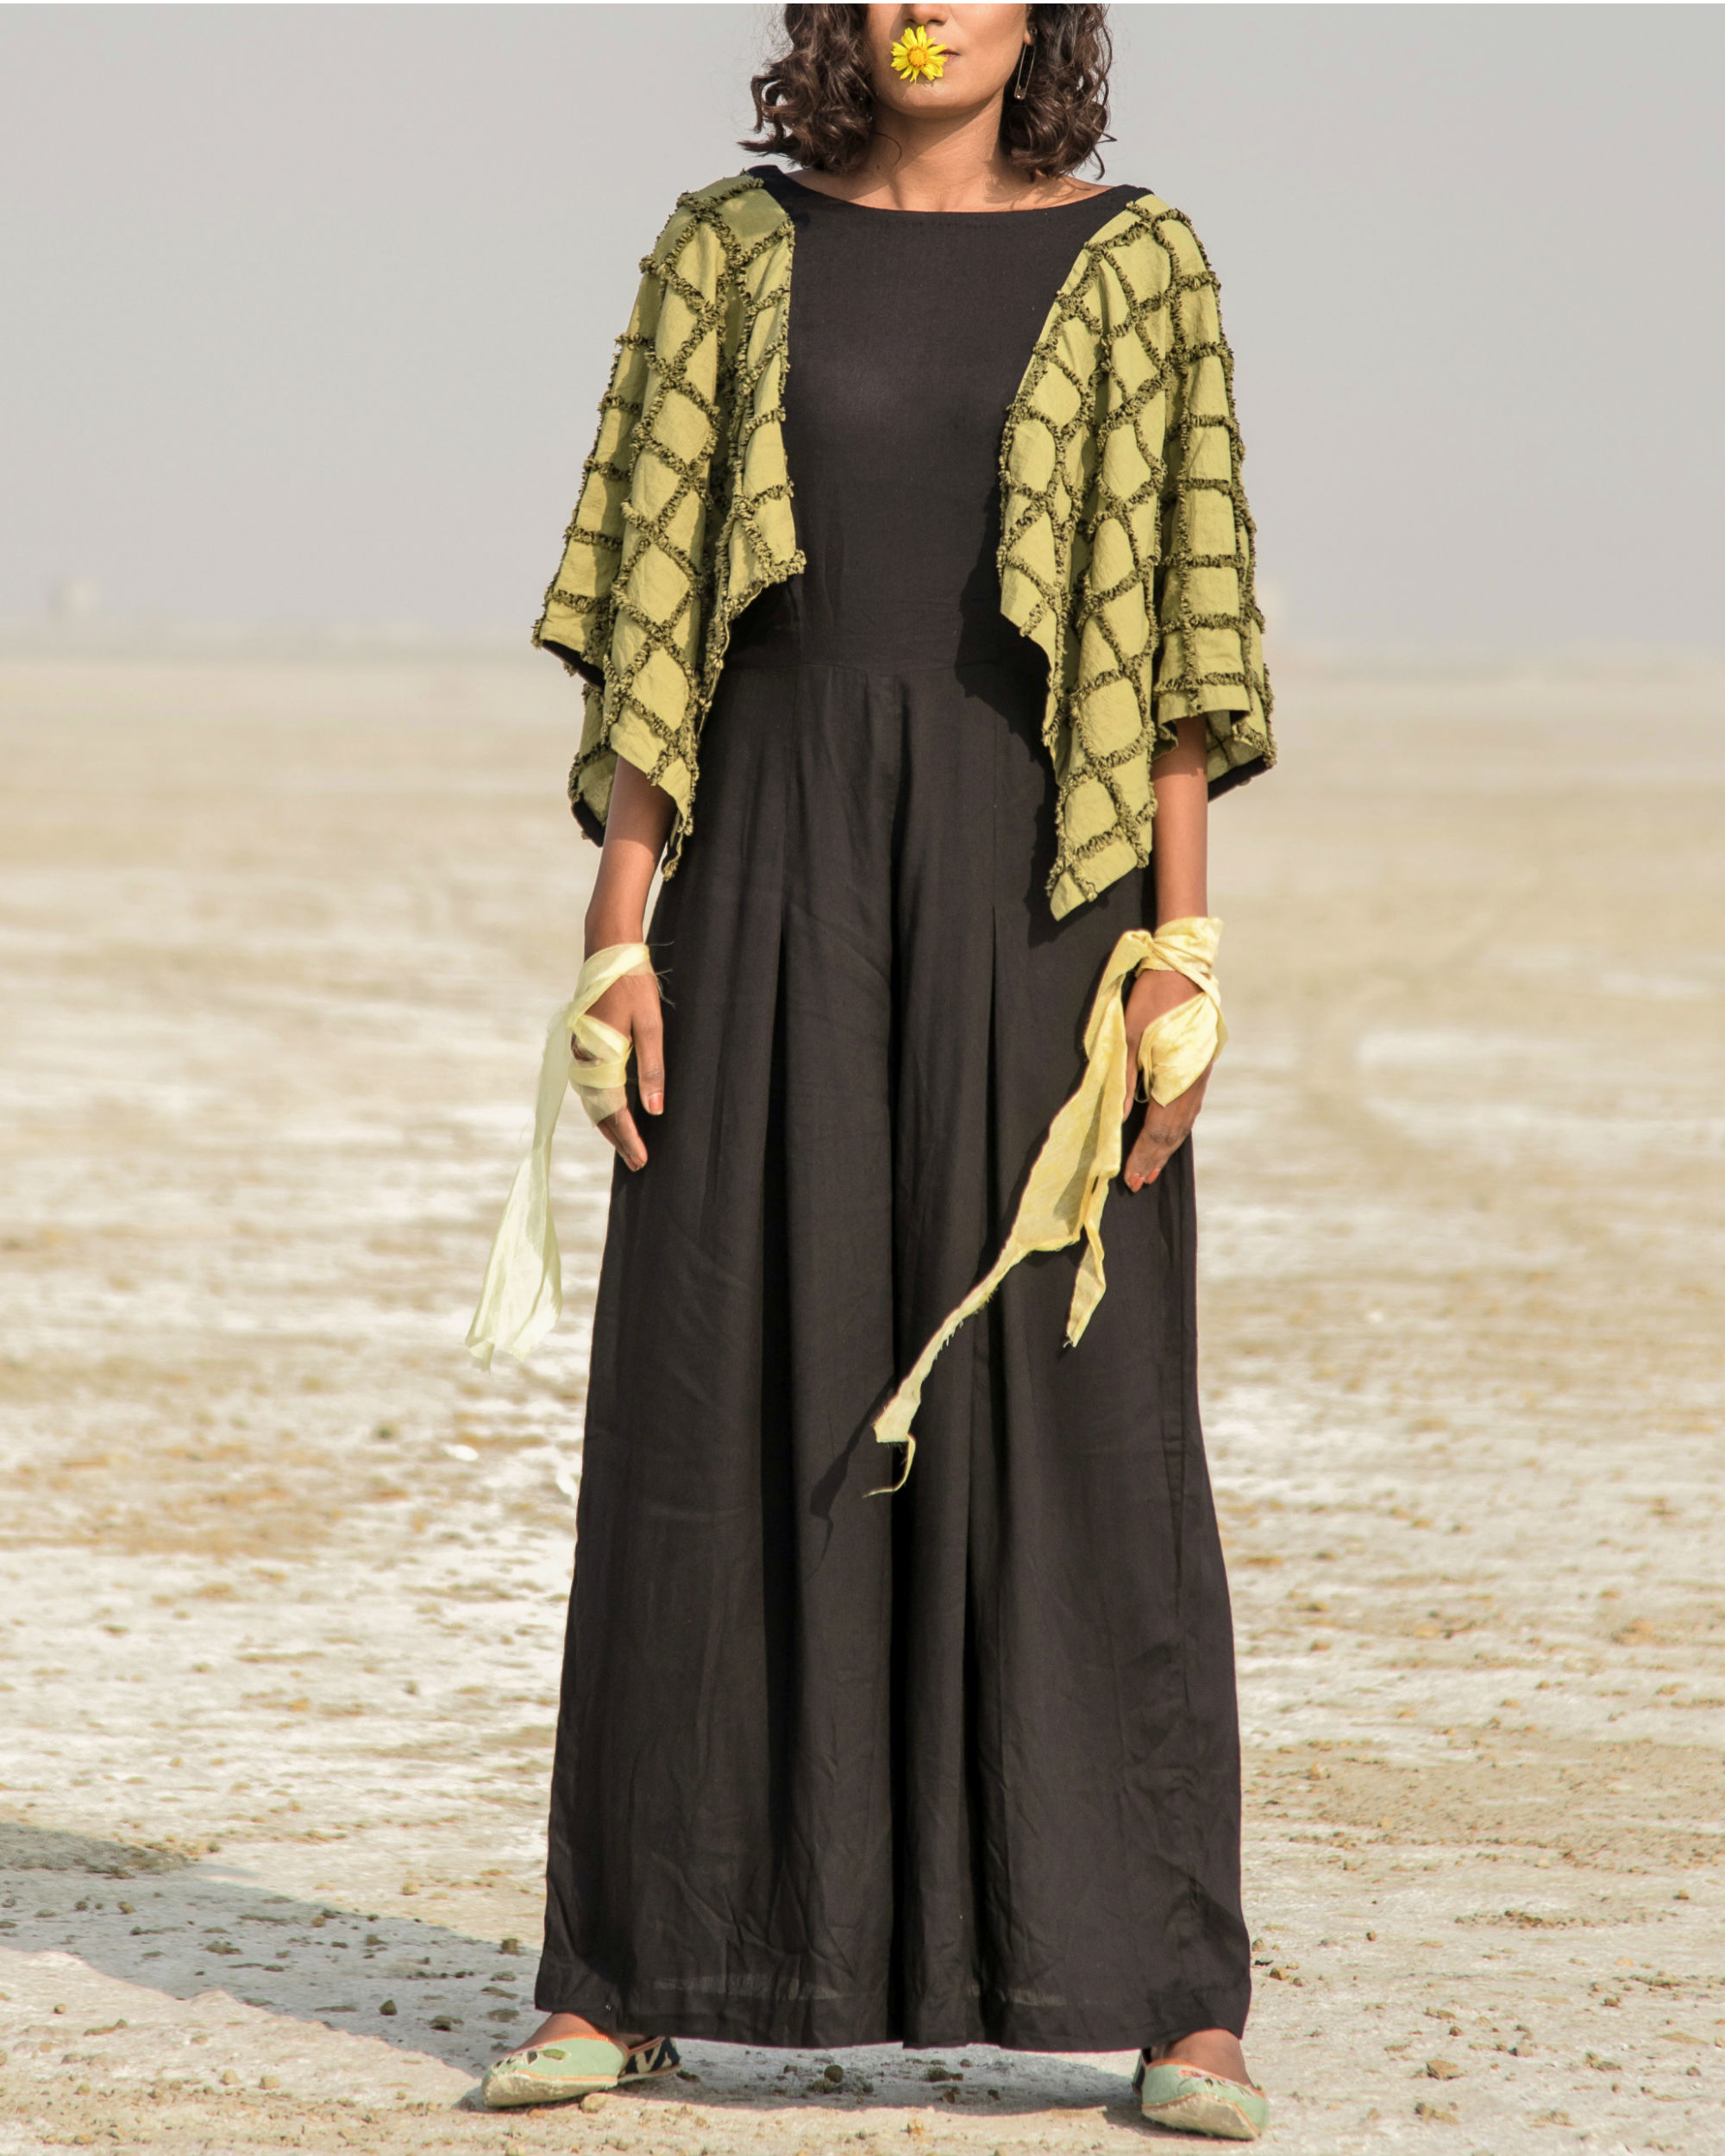 Olive green and black jumpsuit